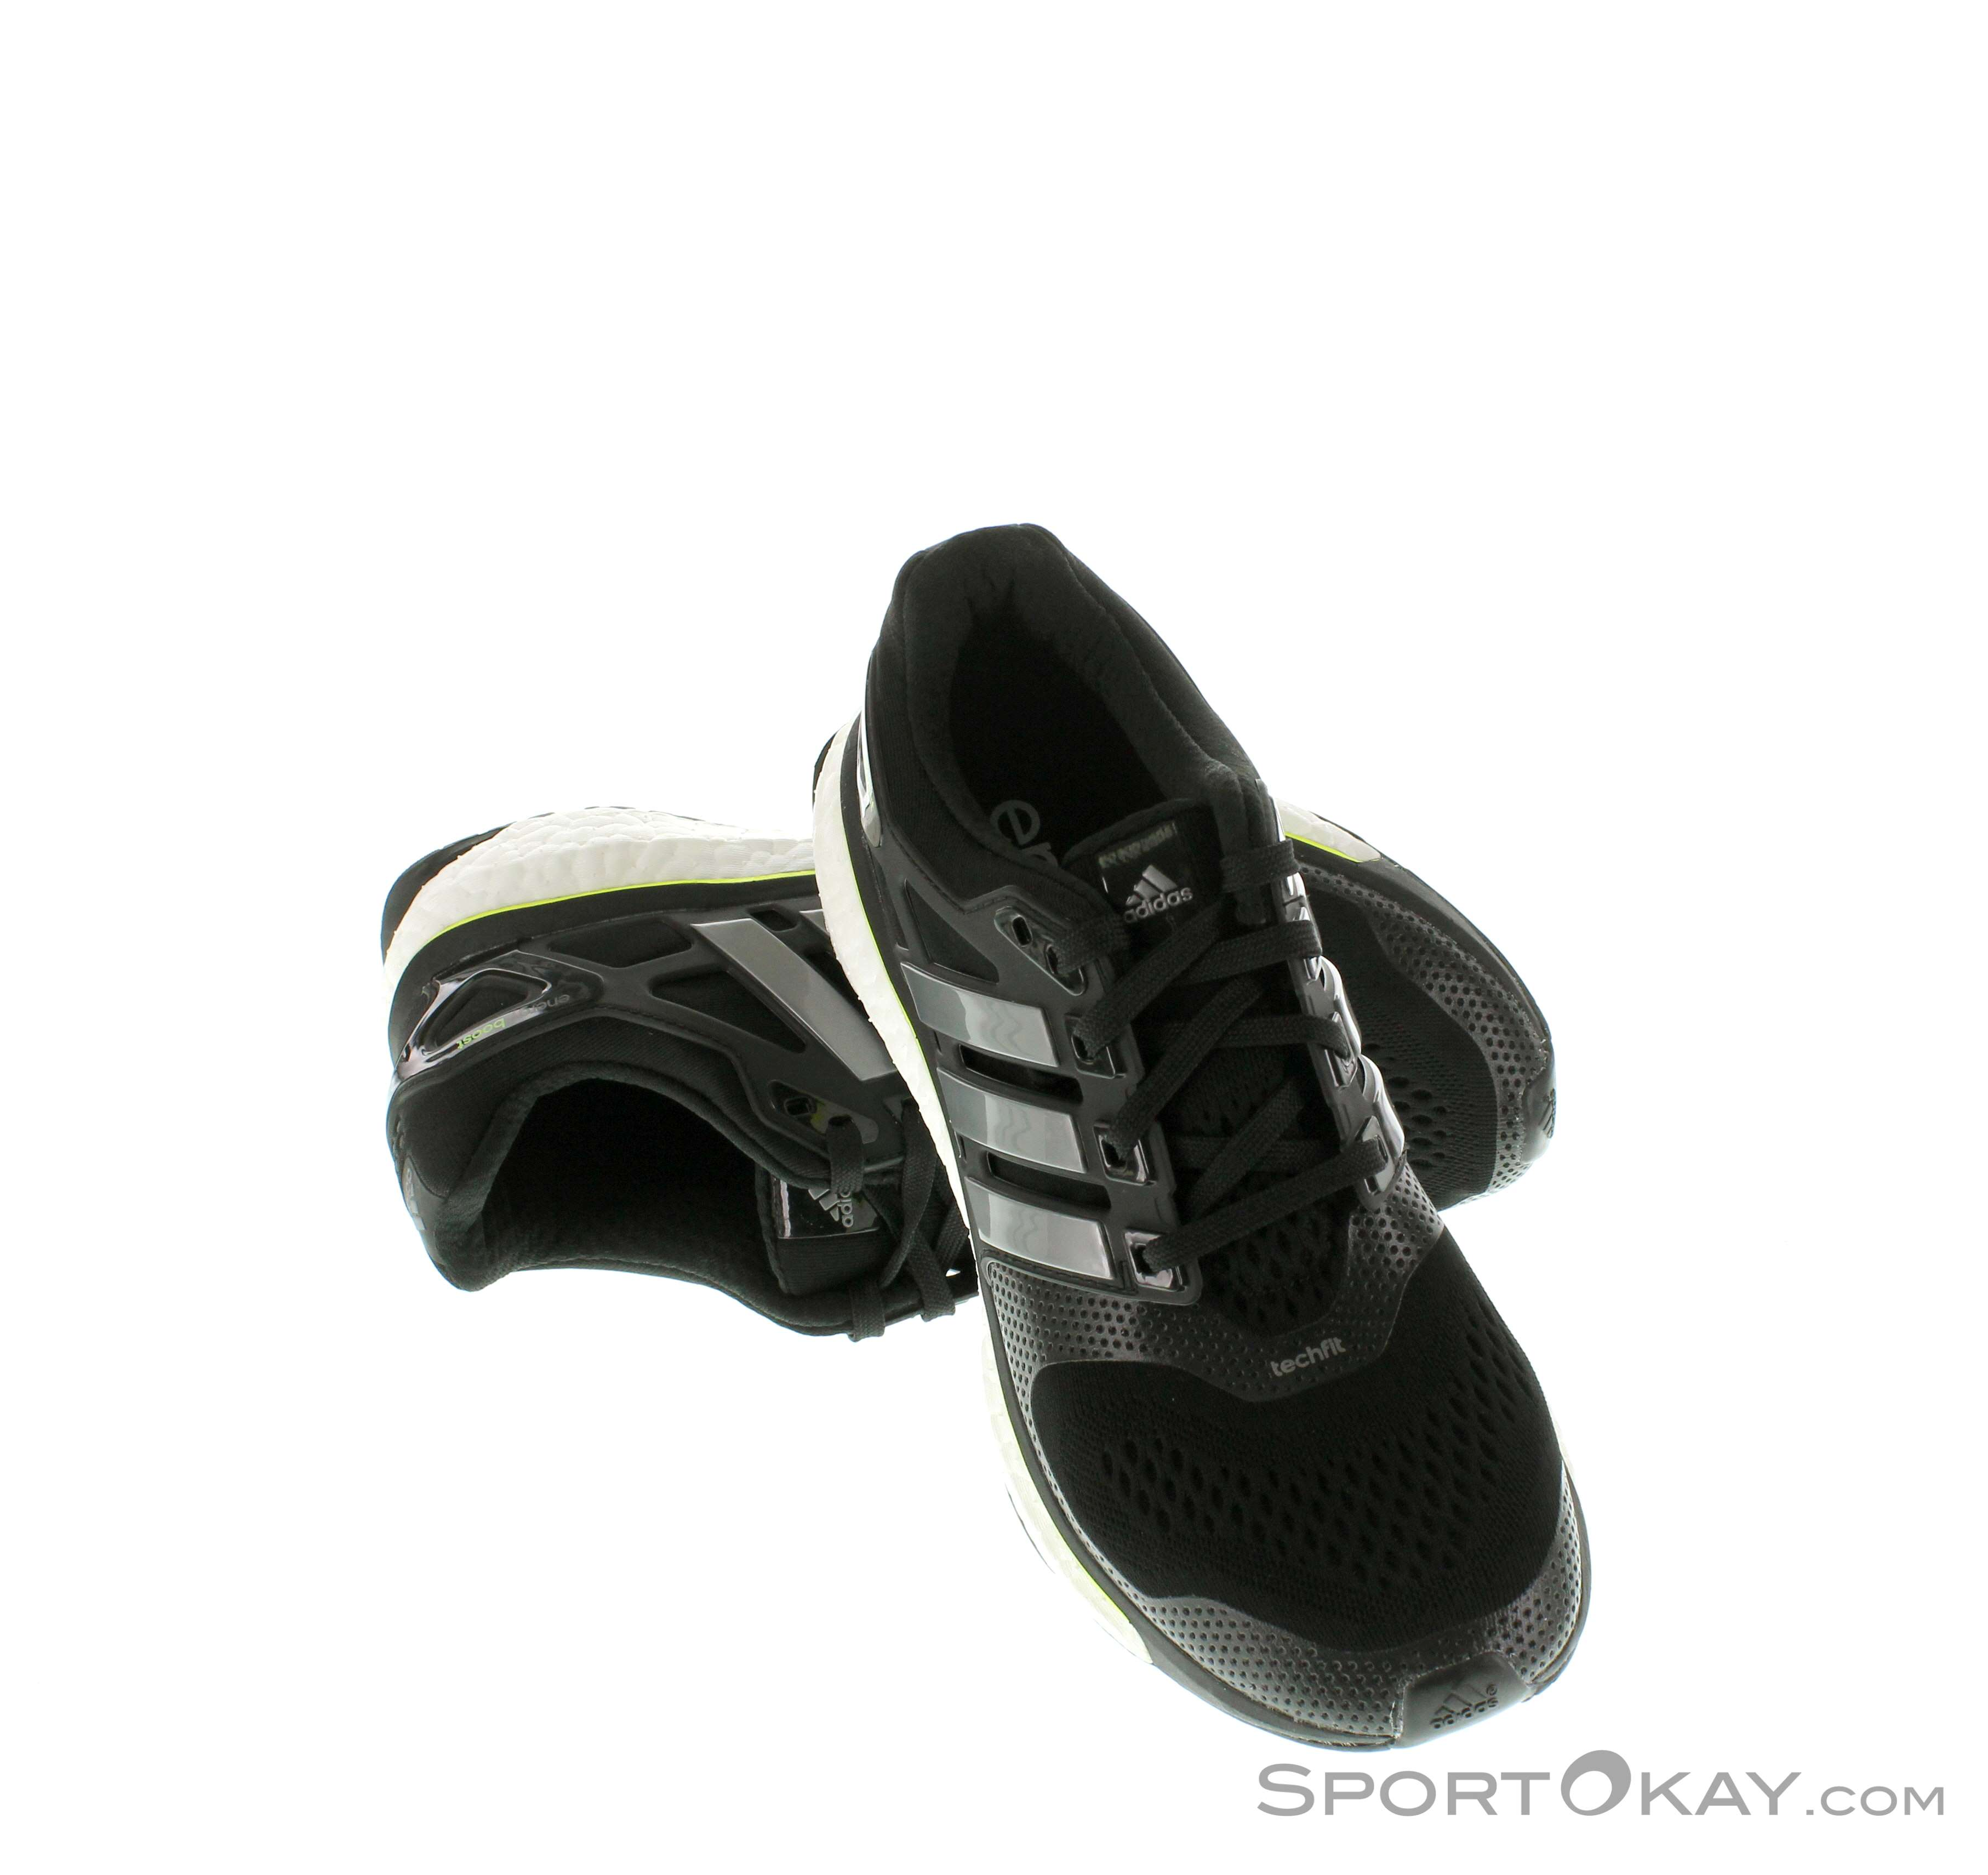 check out 4bb99 d348d adidas Energy Boost 2 ESM Womens Running Shoes, adidas, Black, , Female,